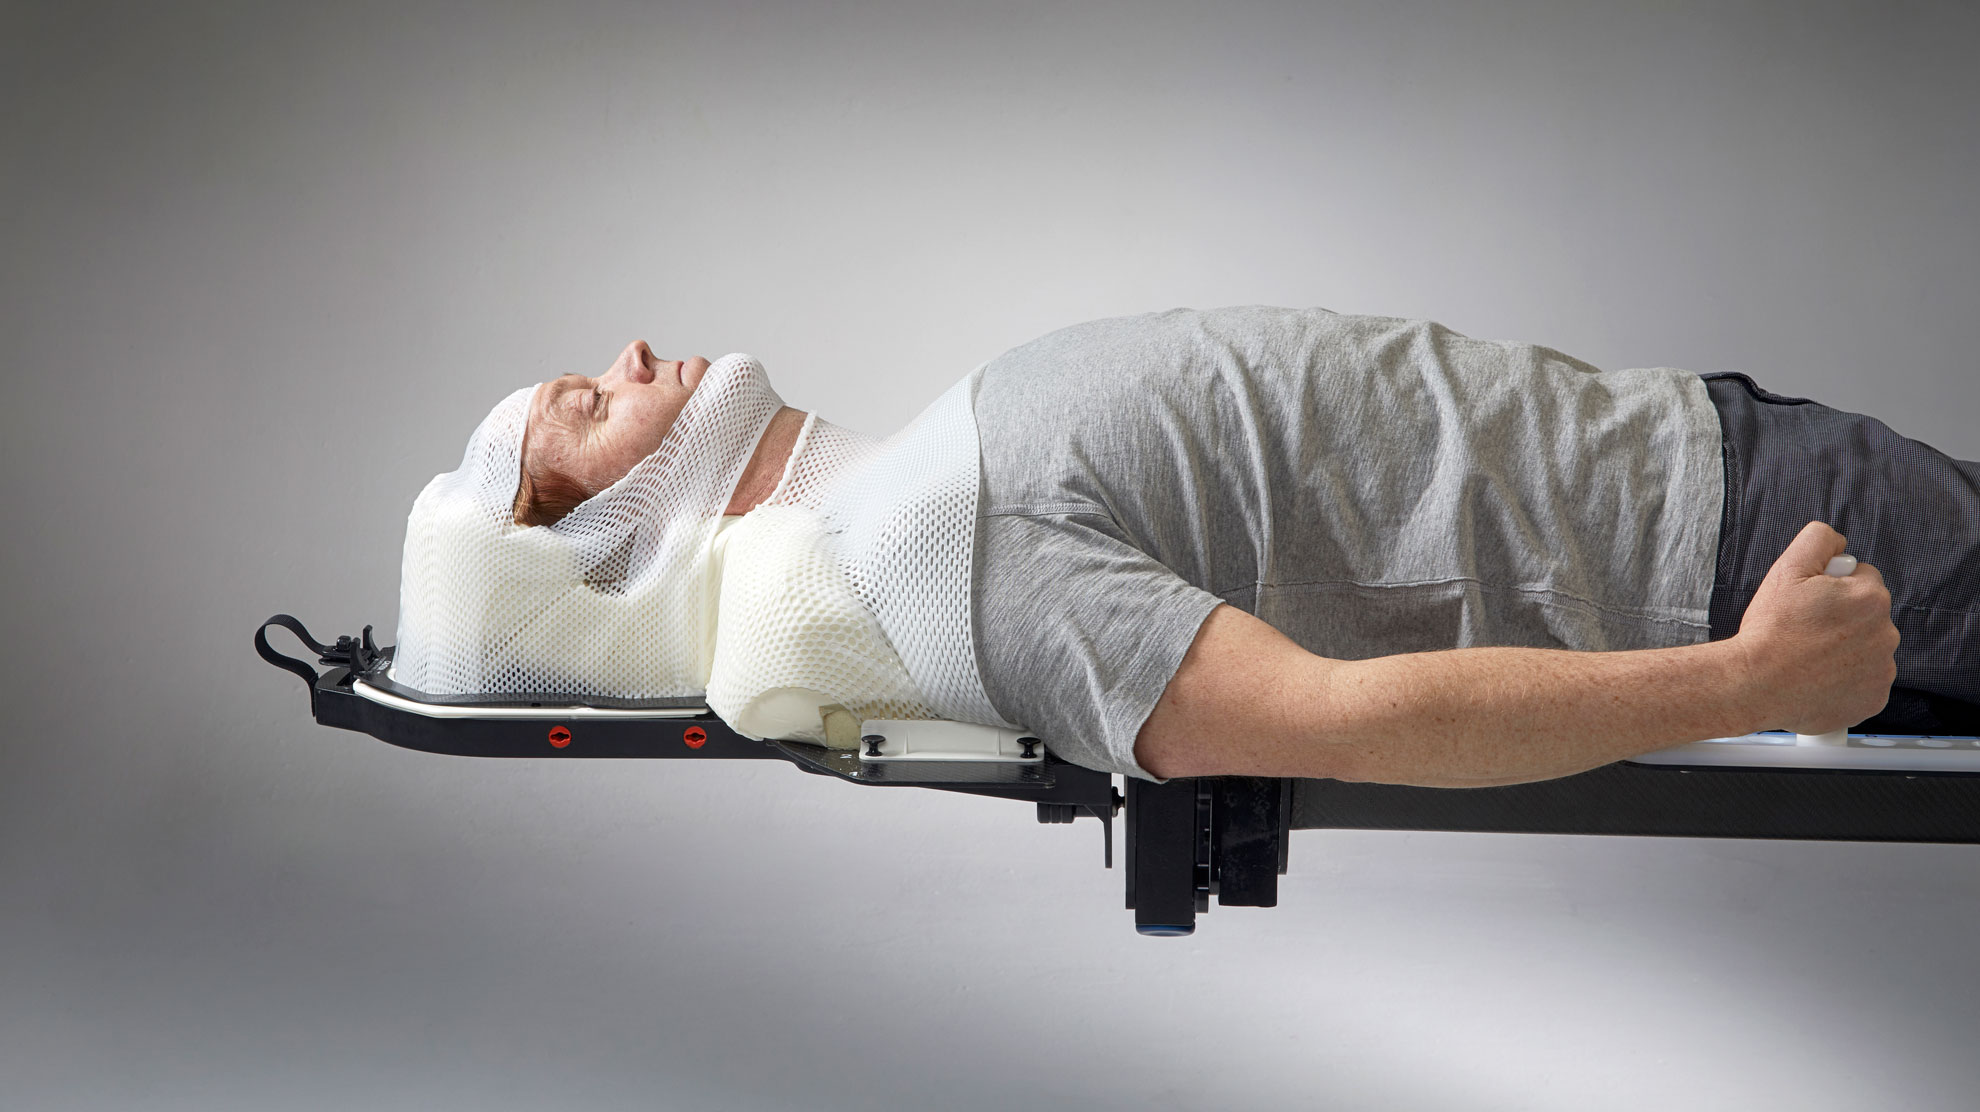 CDR Systems - Patient Positioning  Systems with you in mind